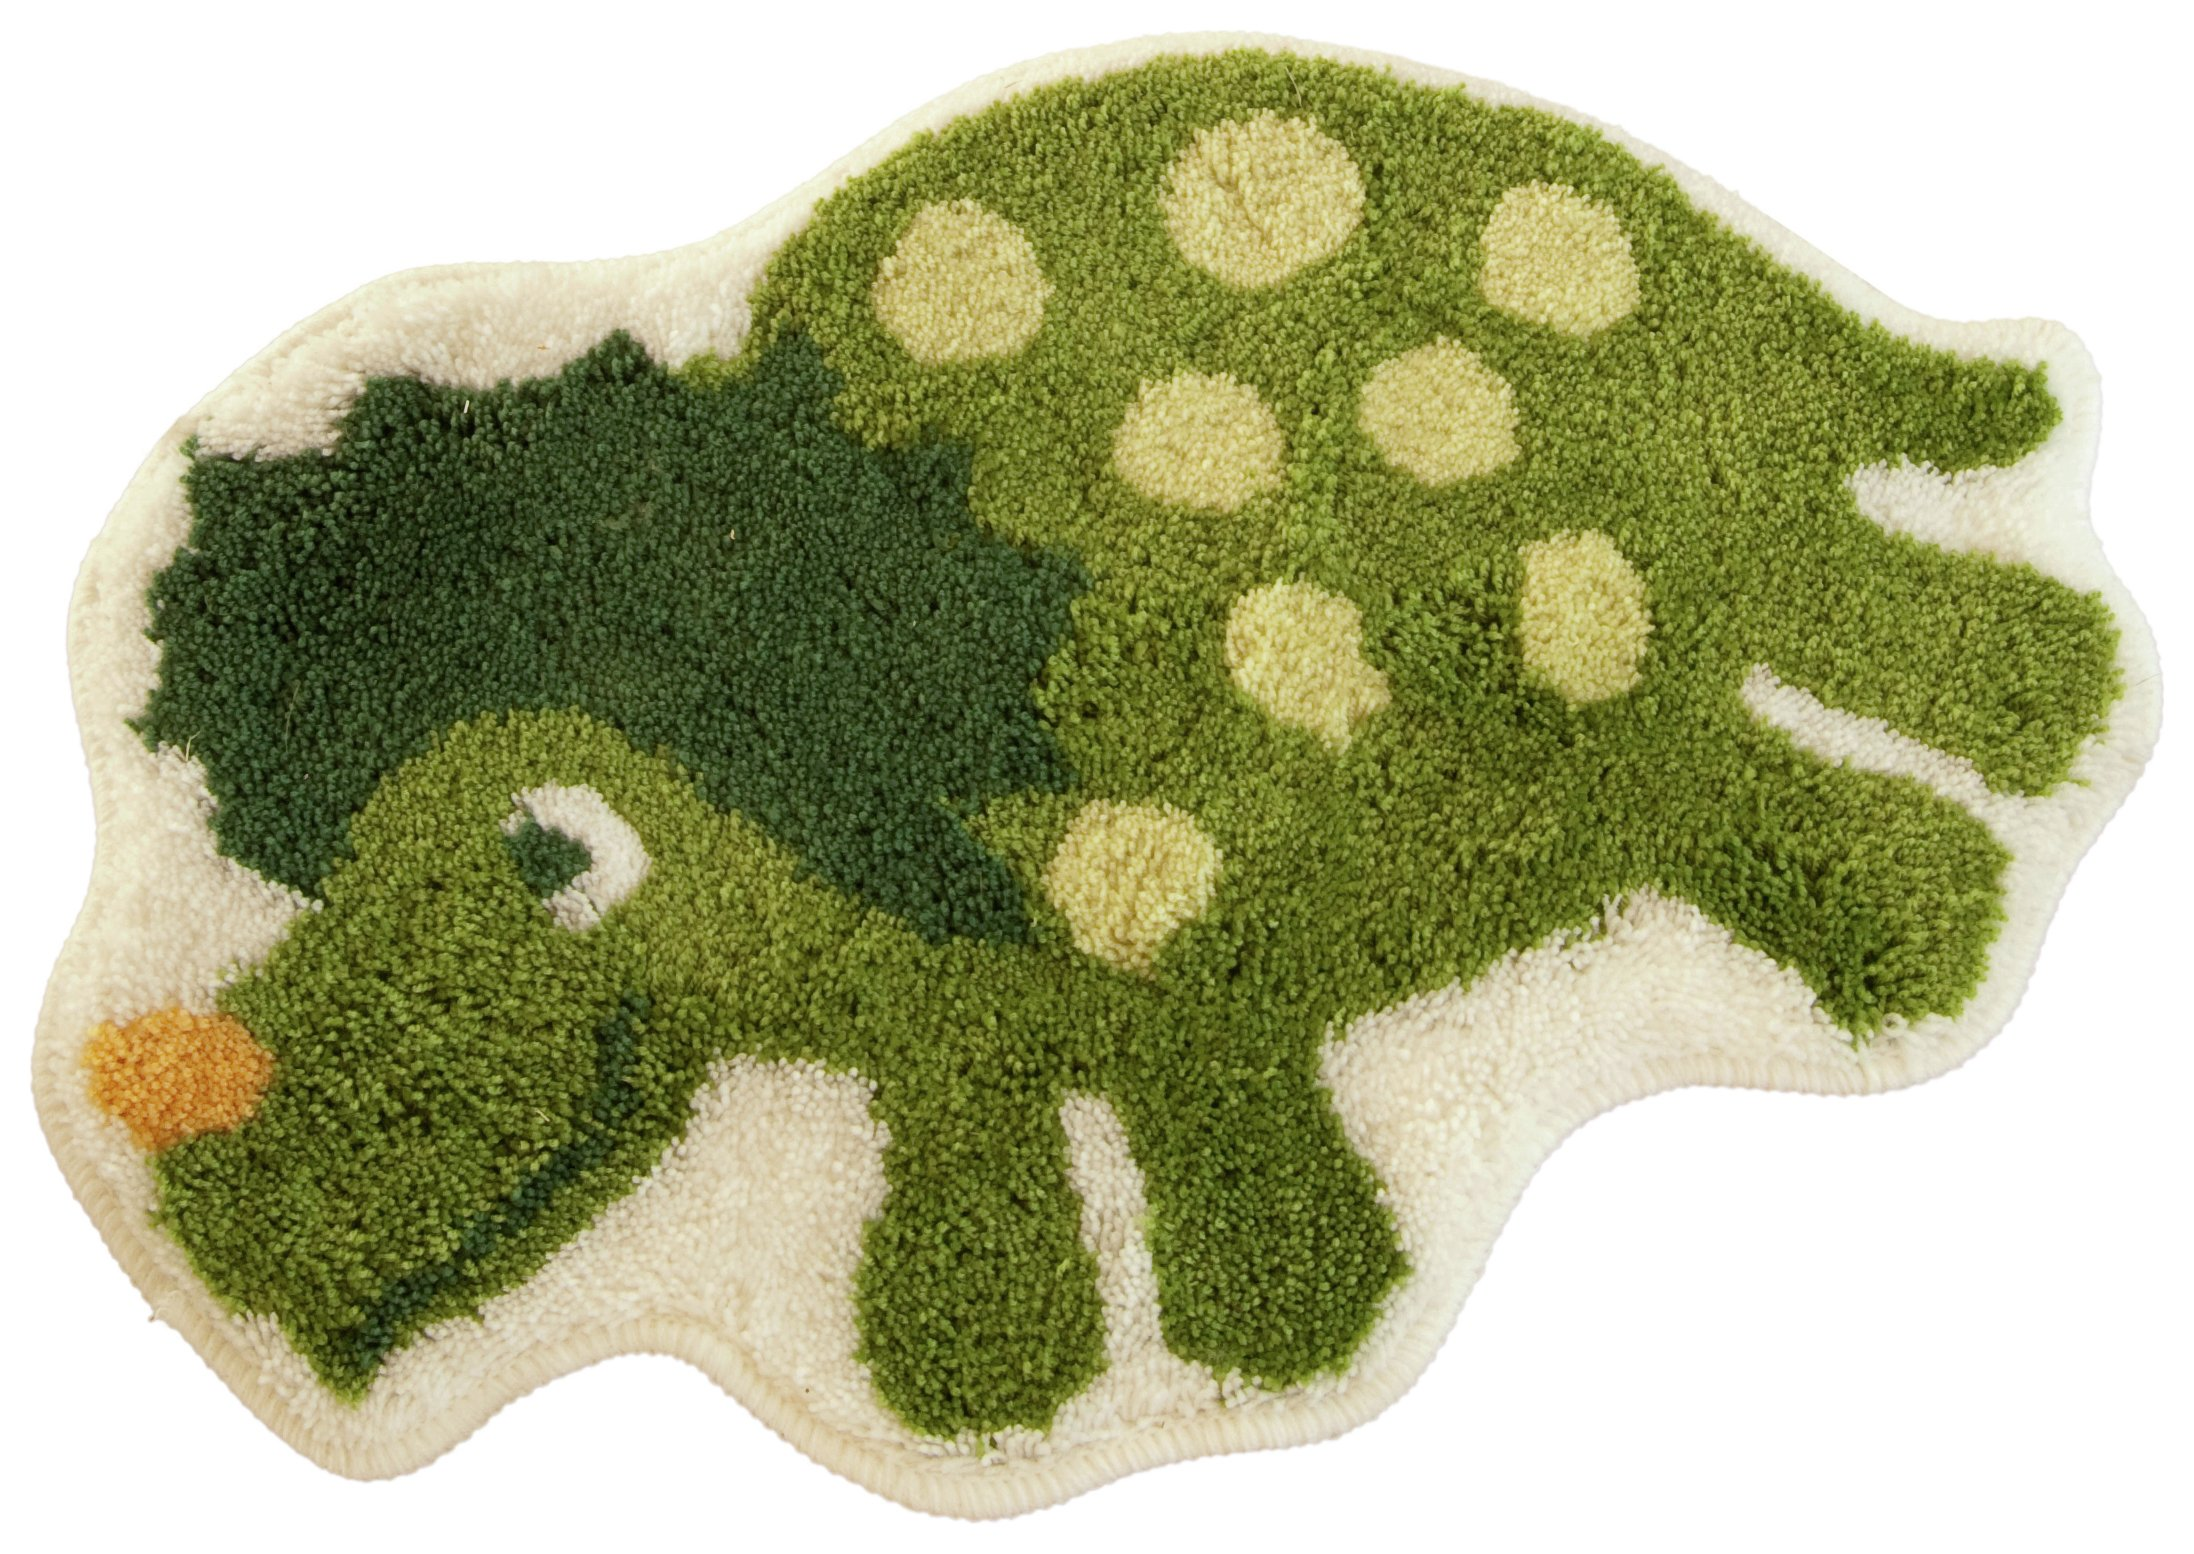 Image of Dino Rug - 40x60cm - Multi